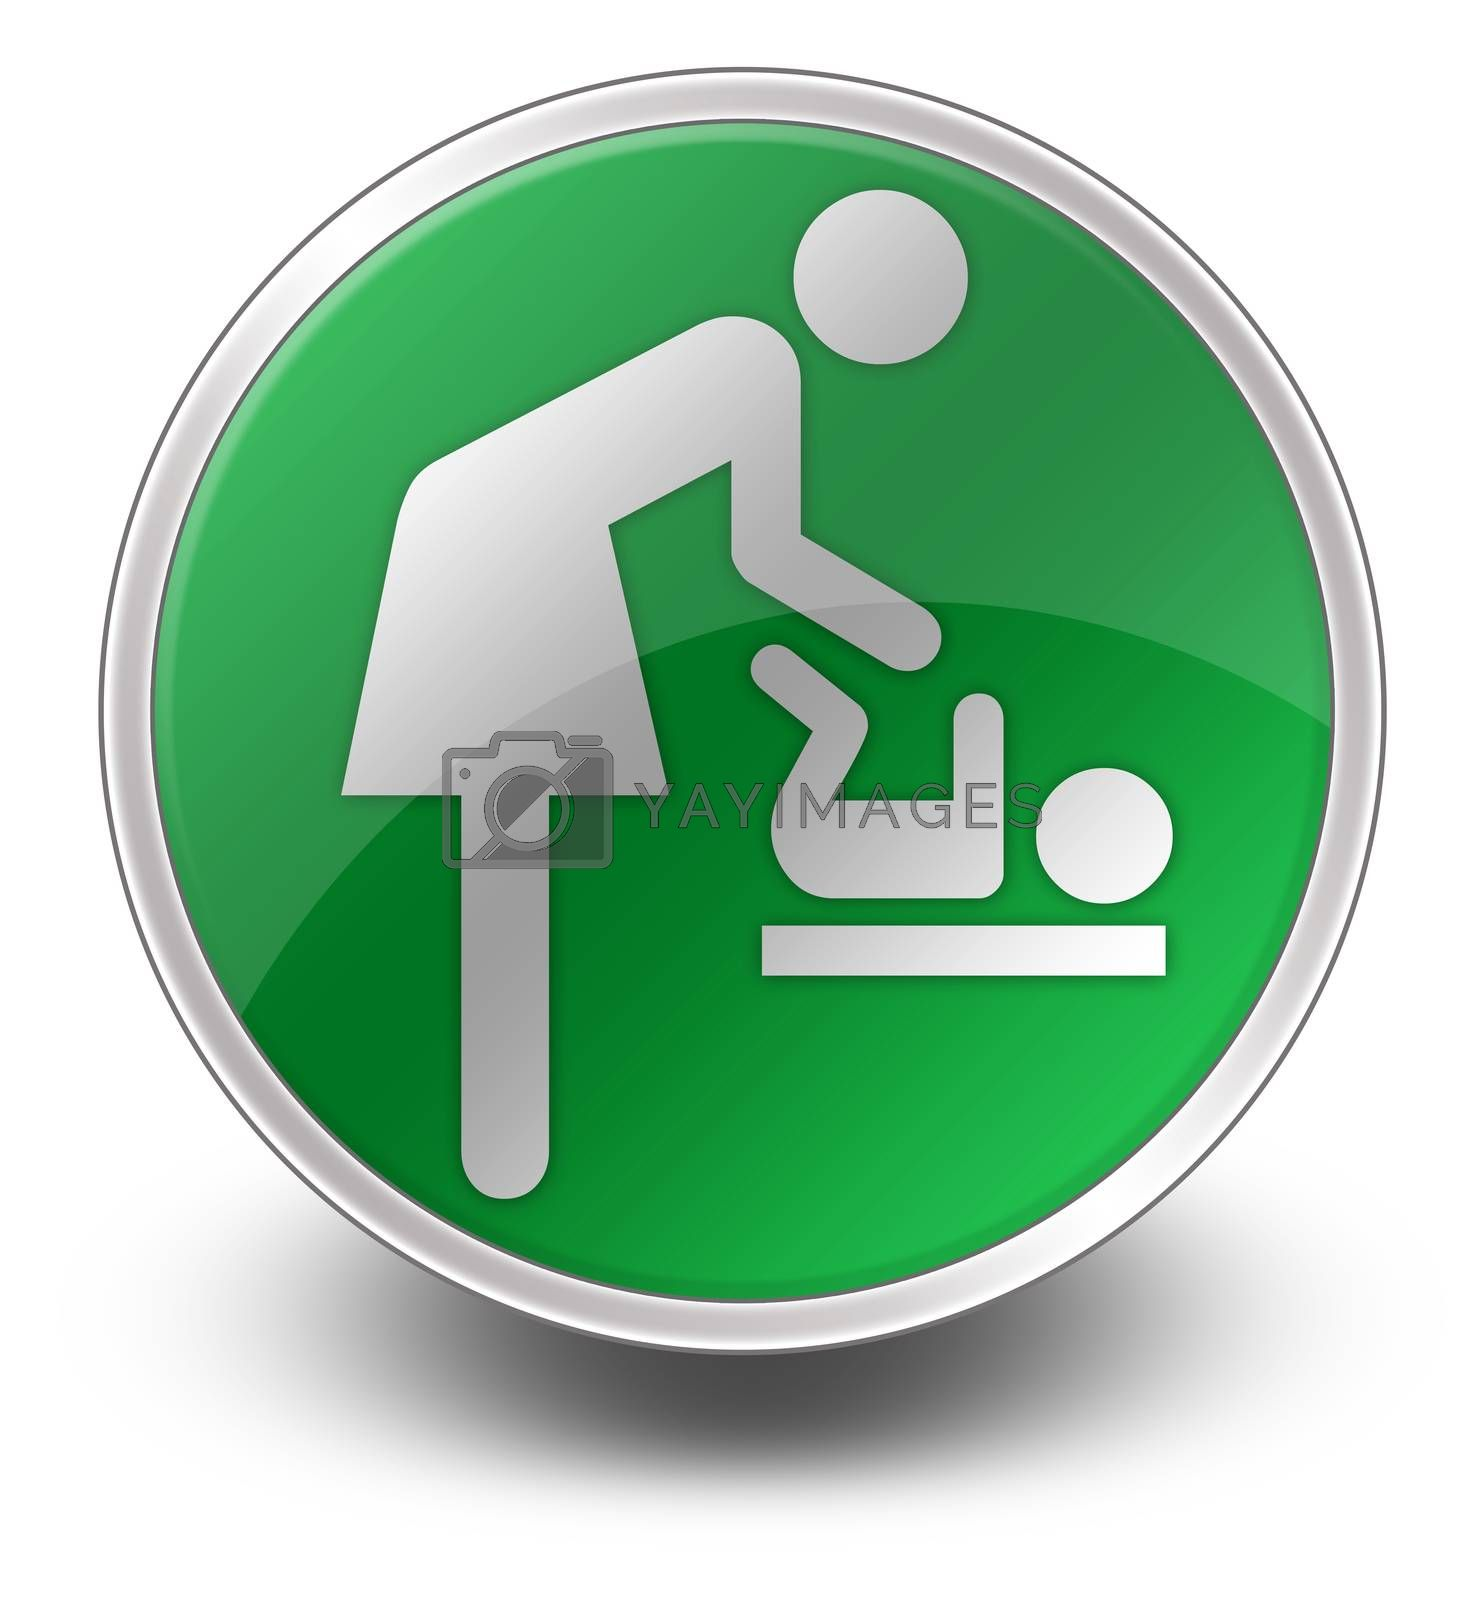 """Royalty free image of Icon/Button/Pictogram """"Baby Change"""" by mindscanner"""